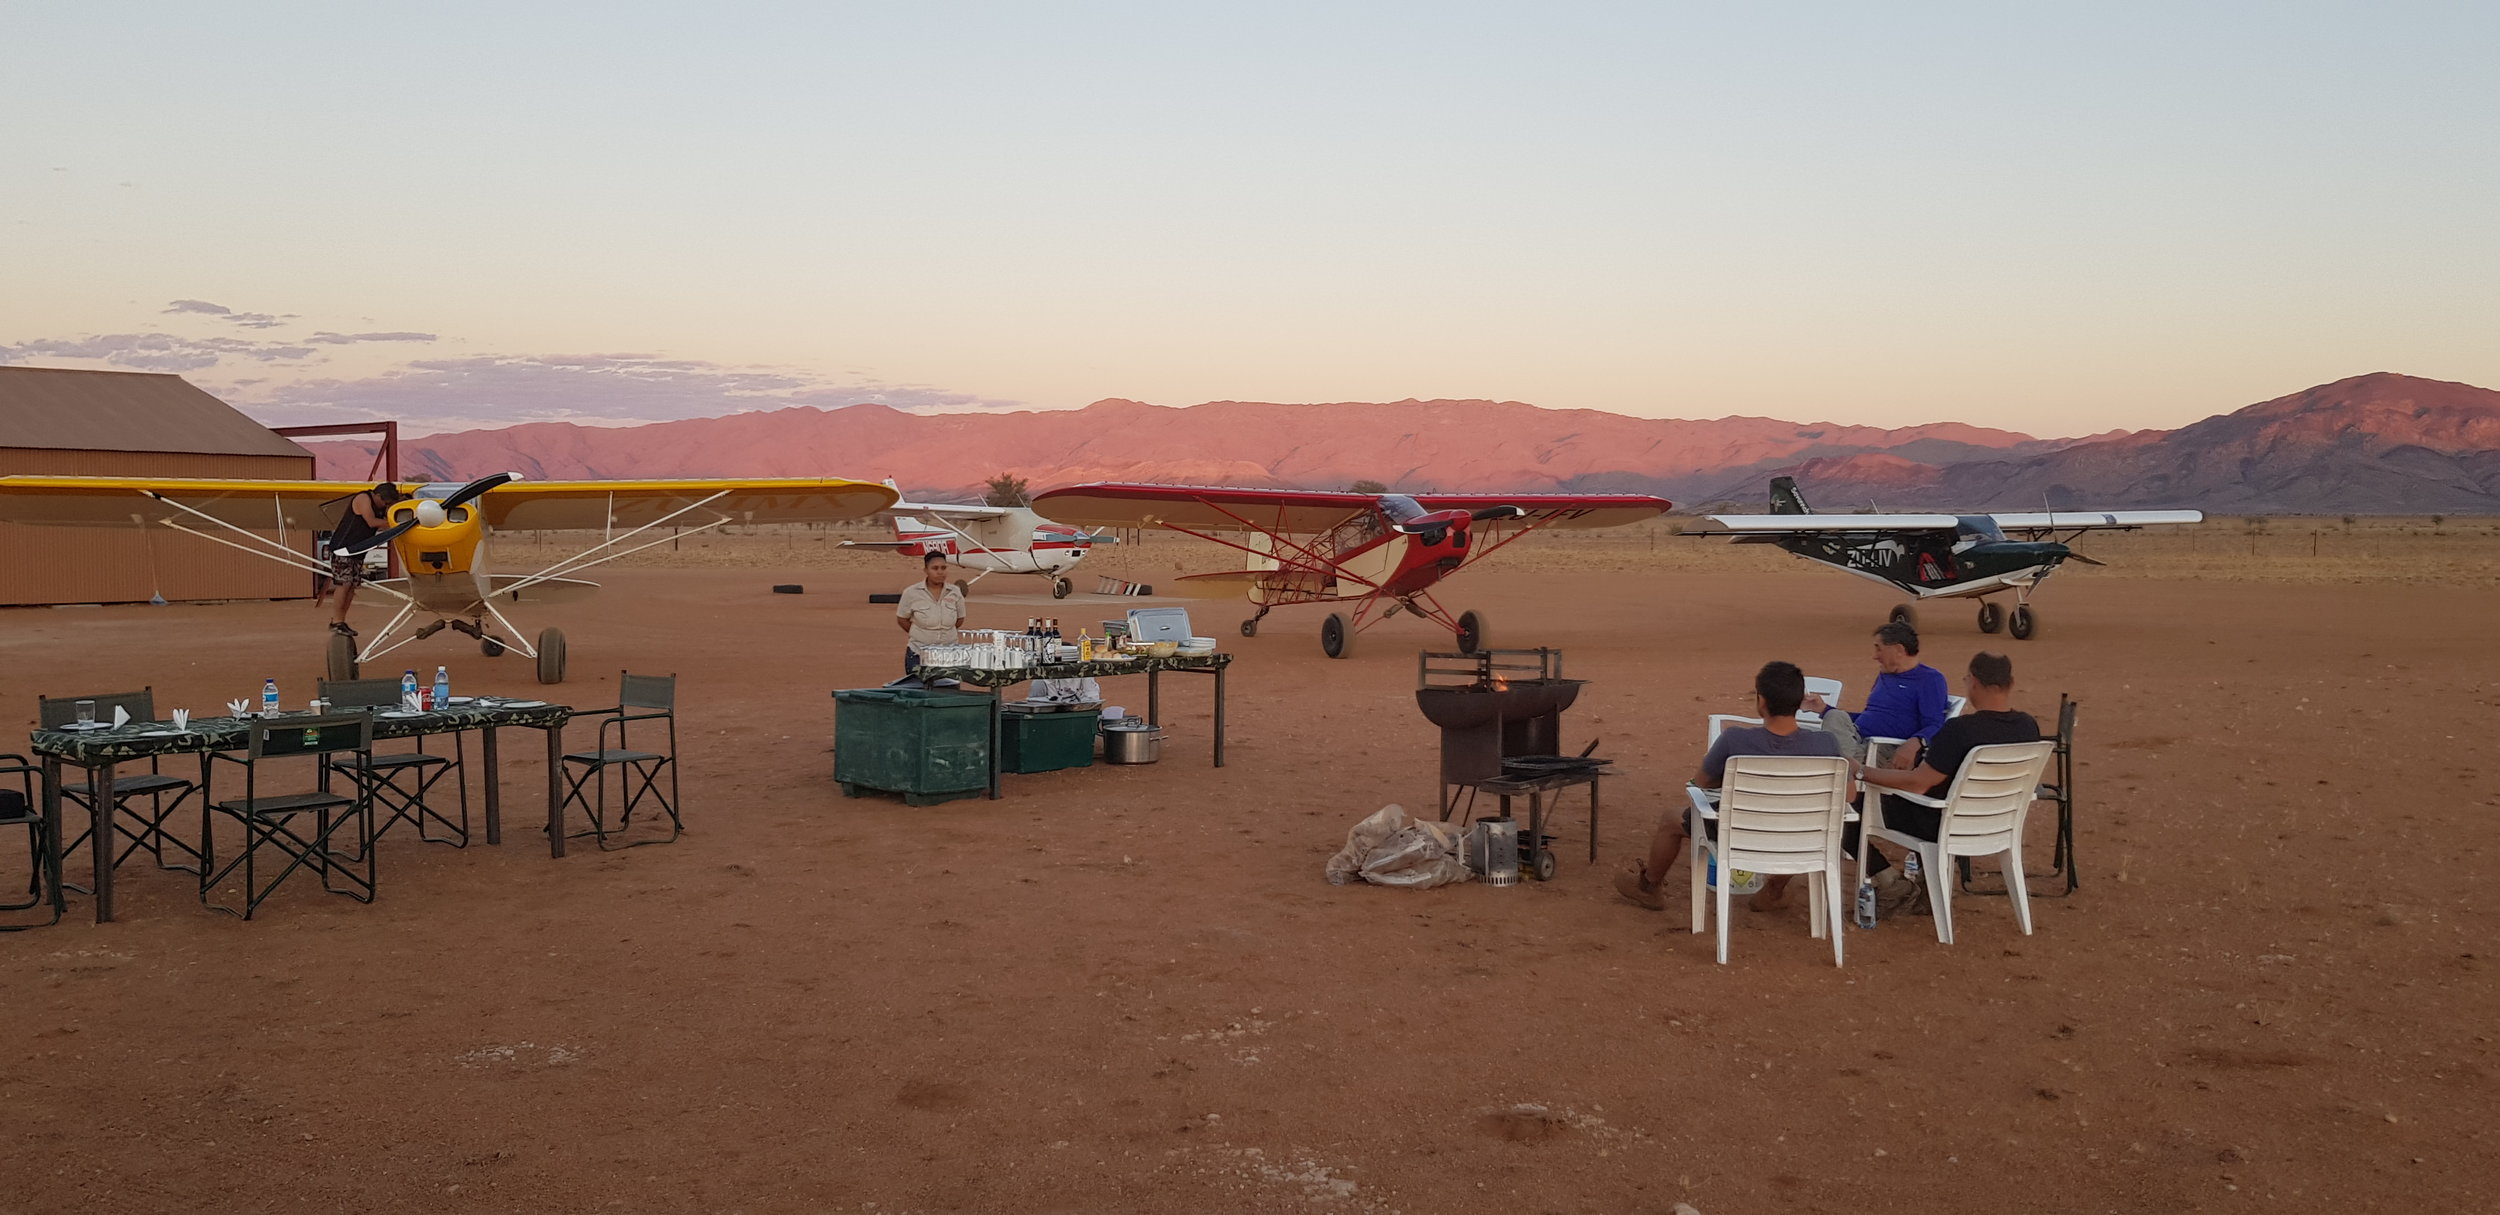 CAMPING IN THE NAMIB DESERT